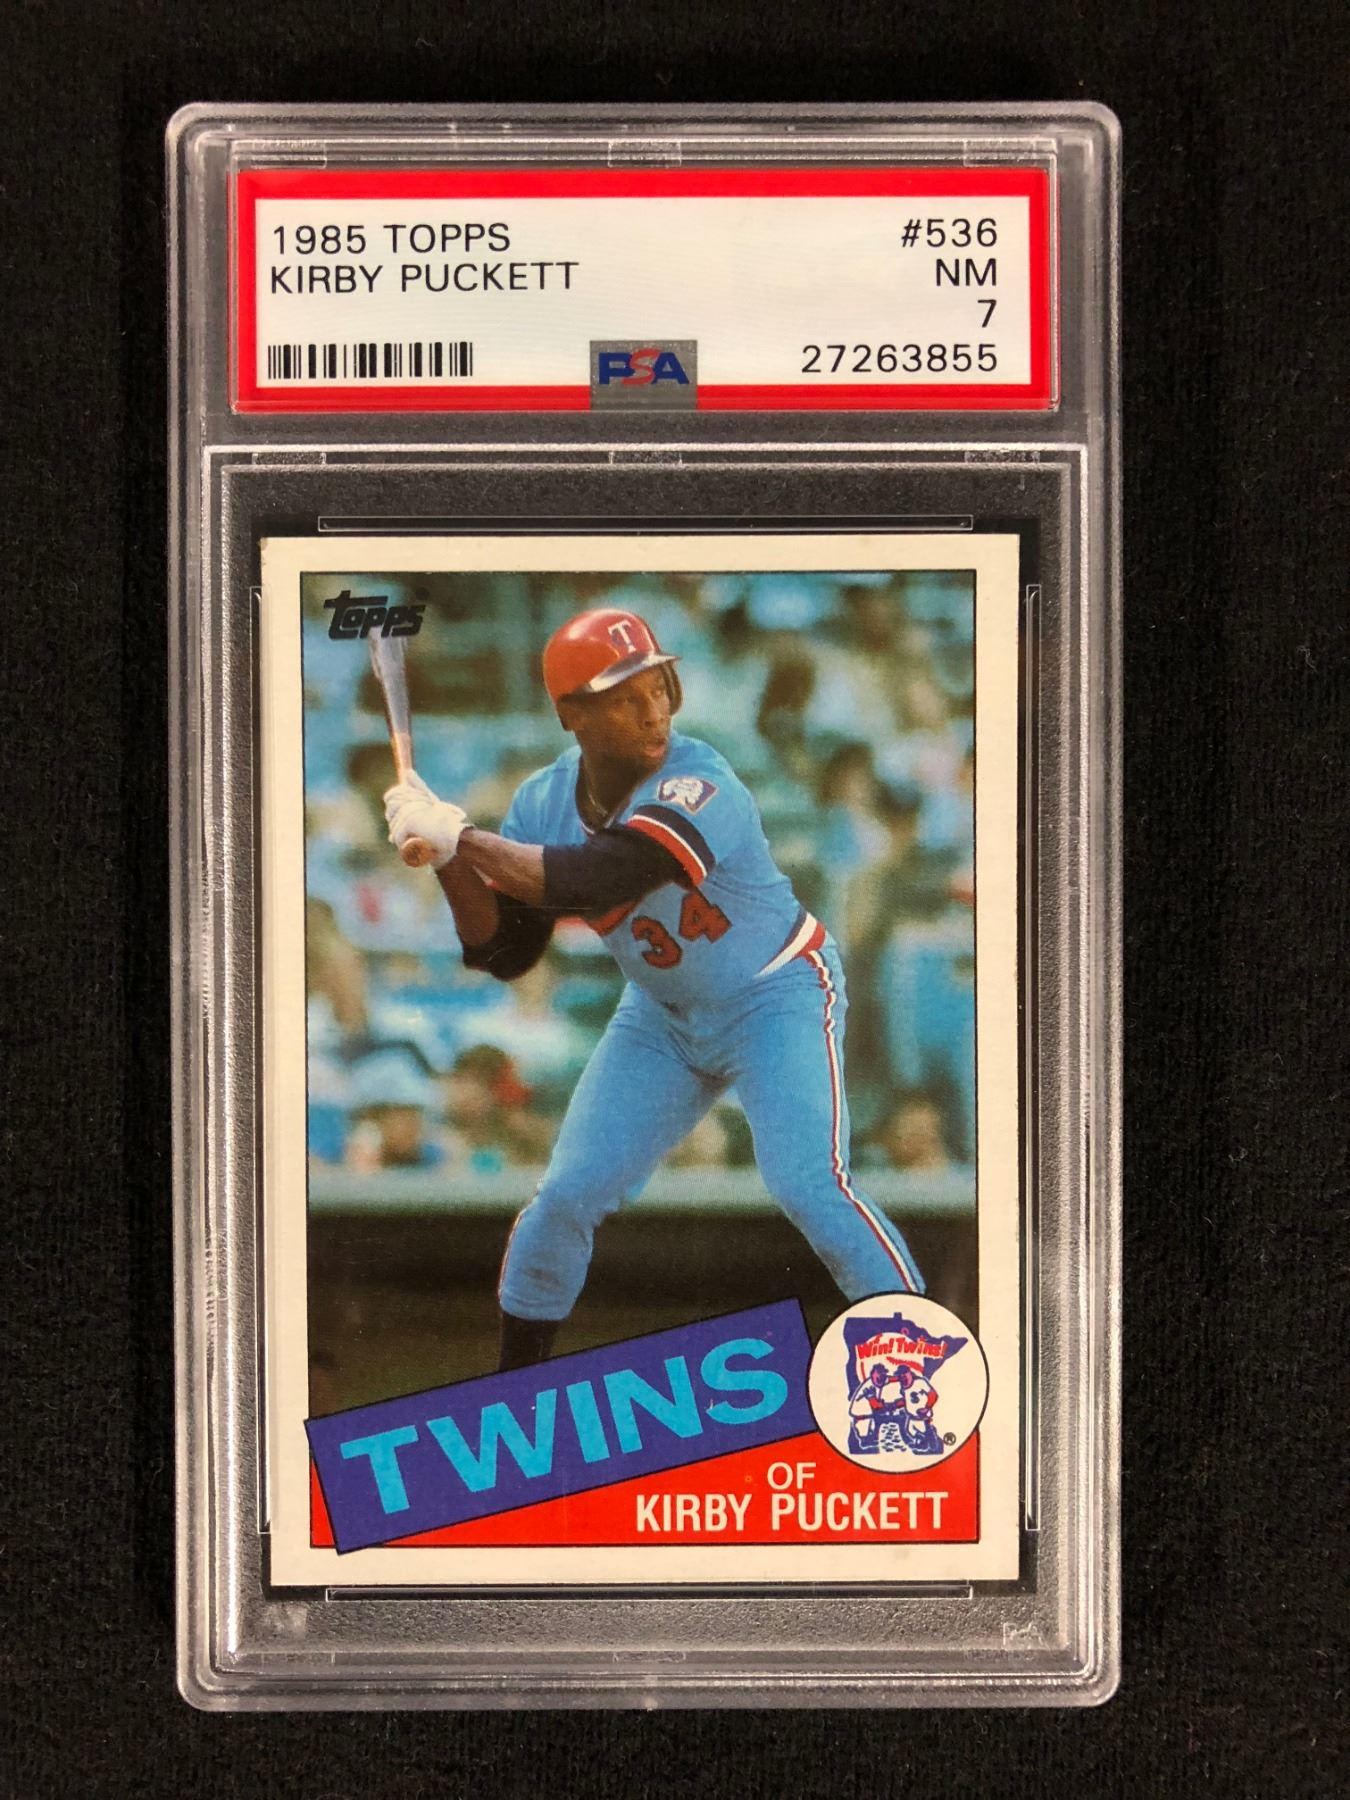 1985 Topps 536 Kirby Puckett Rookie Card Nm 7 Psa Graded